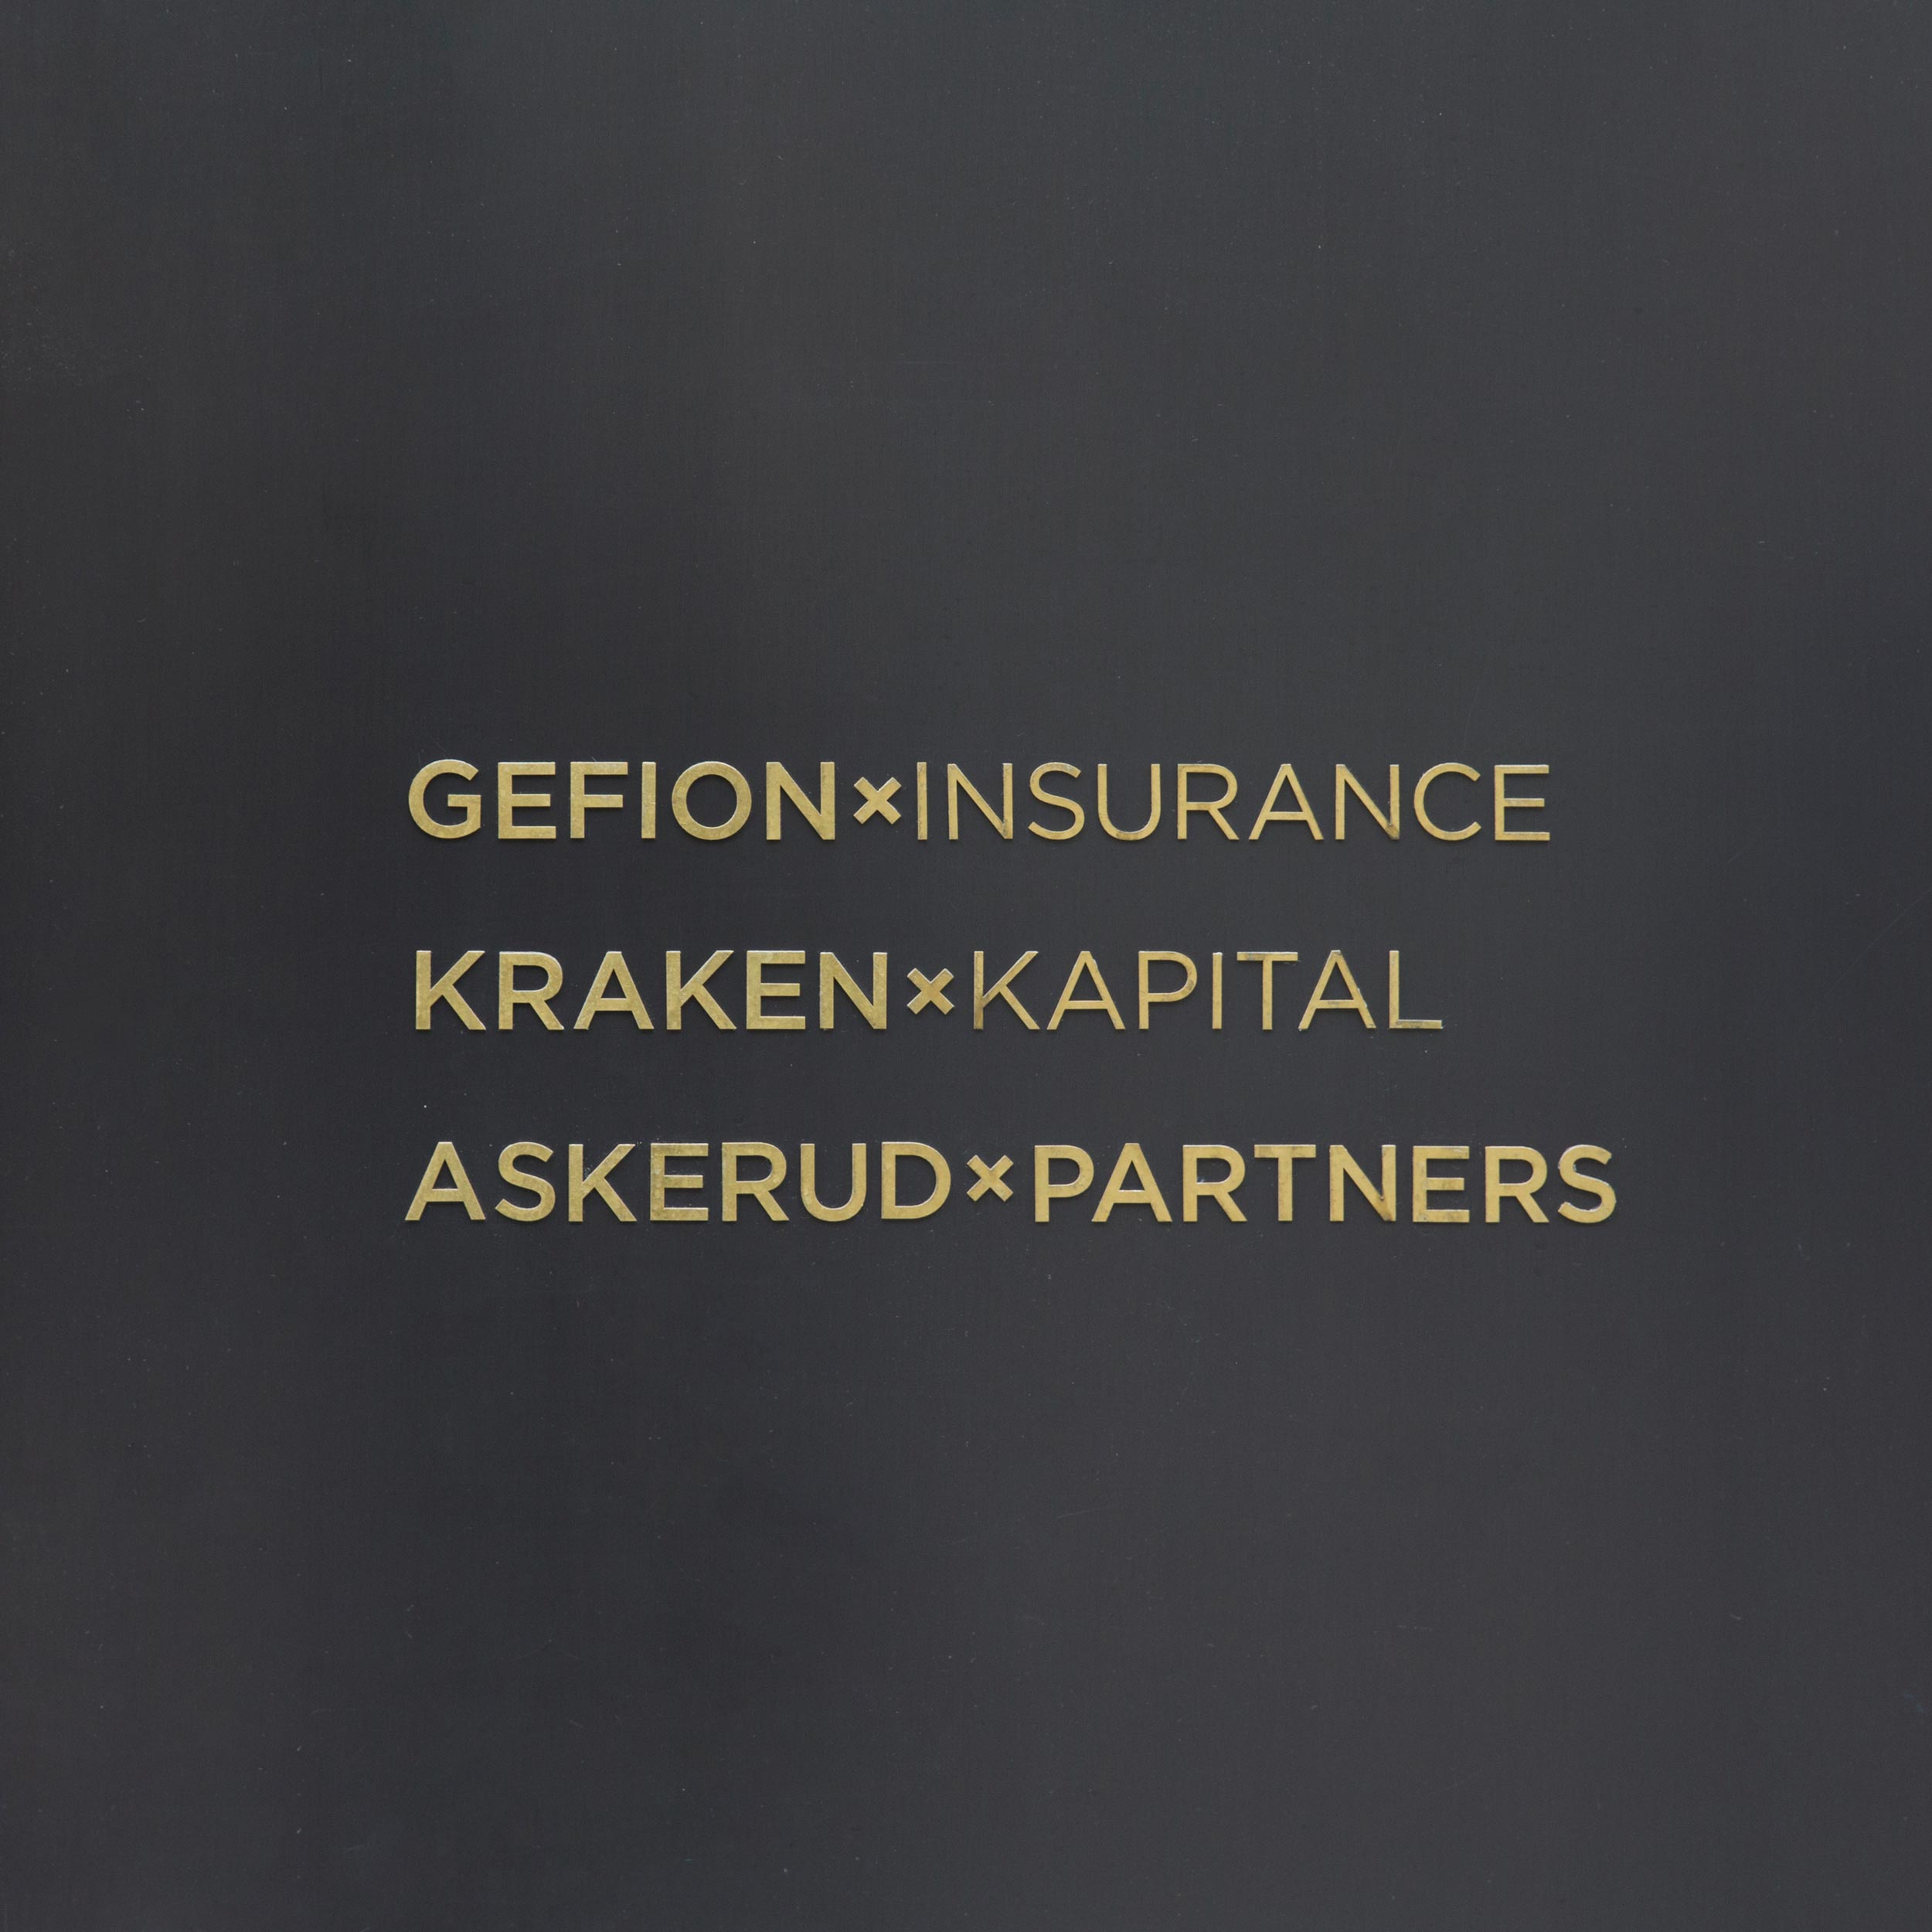 Company names of Gefion Insurance, Kraken Kapital and Askerud Partners mounted to the entrance door of the office